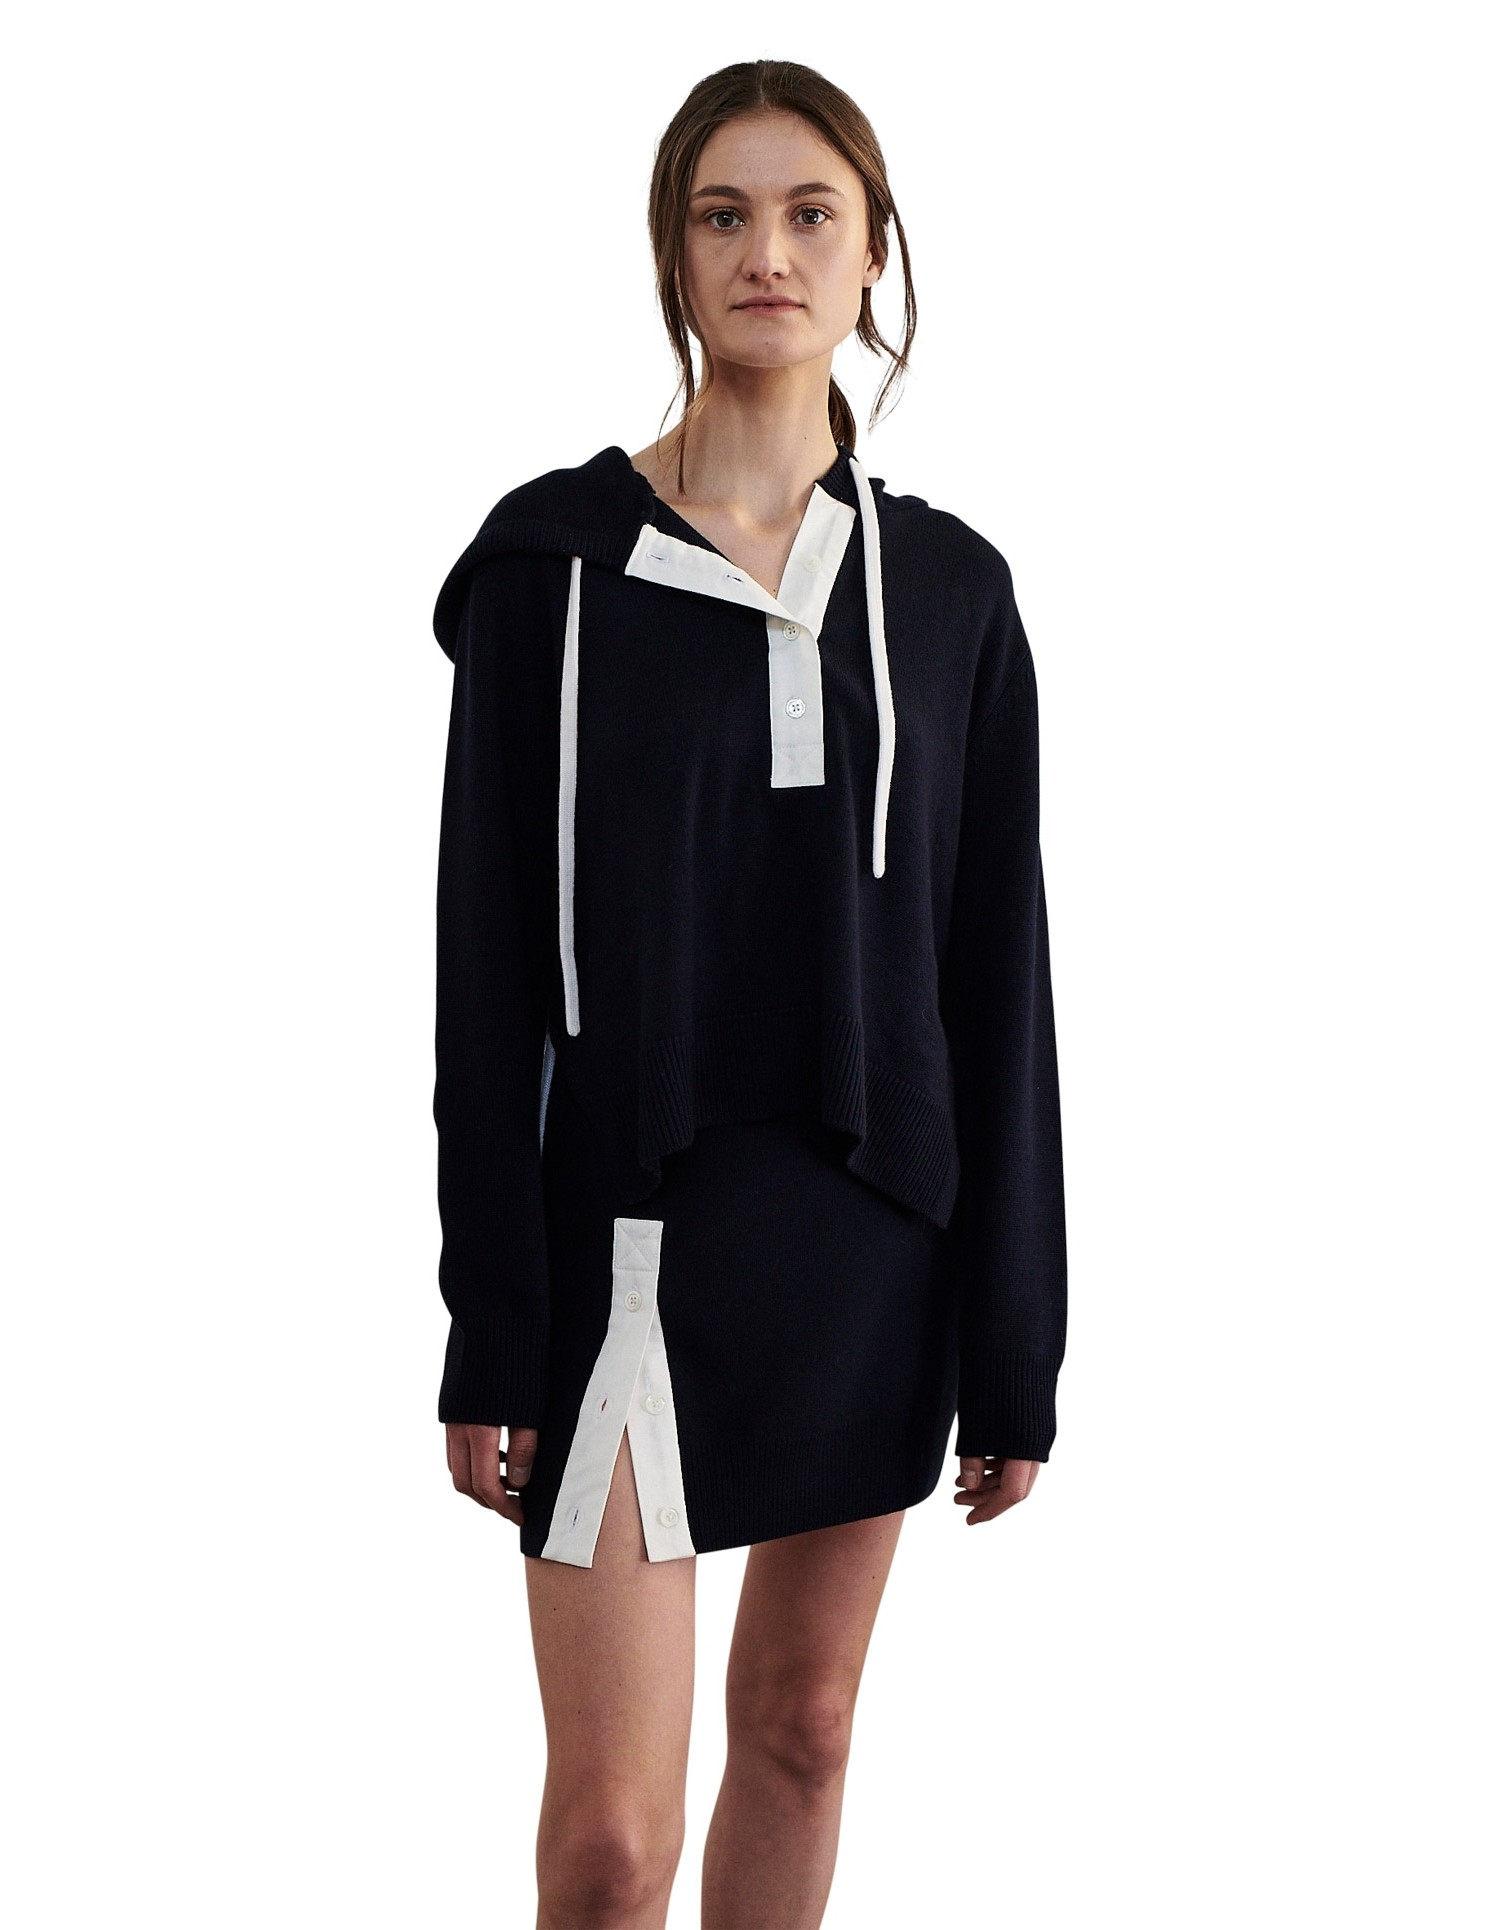 MONSE Rugby Knit Mini Skirt in Midnight and Ivory on Model Front View